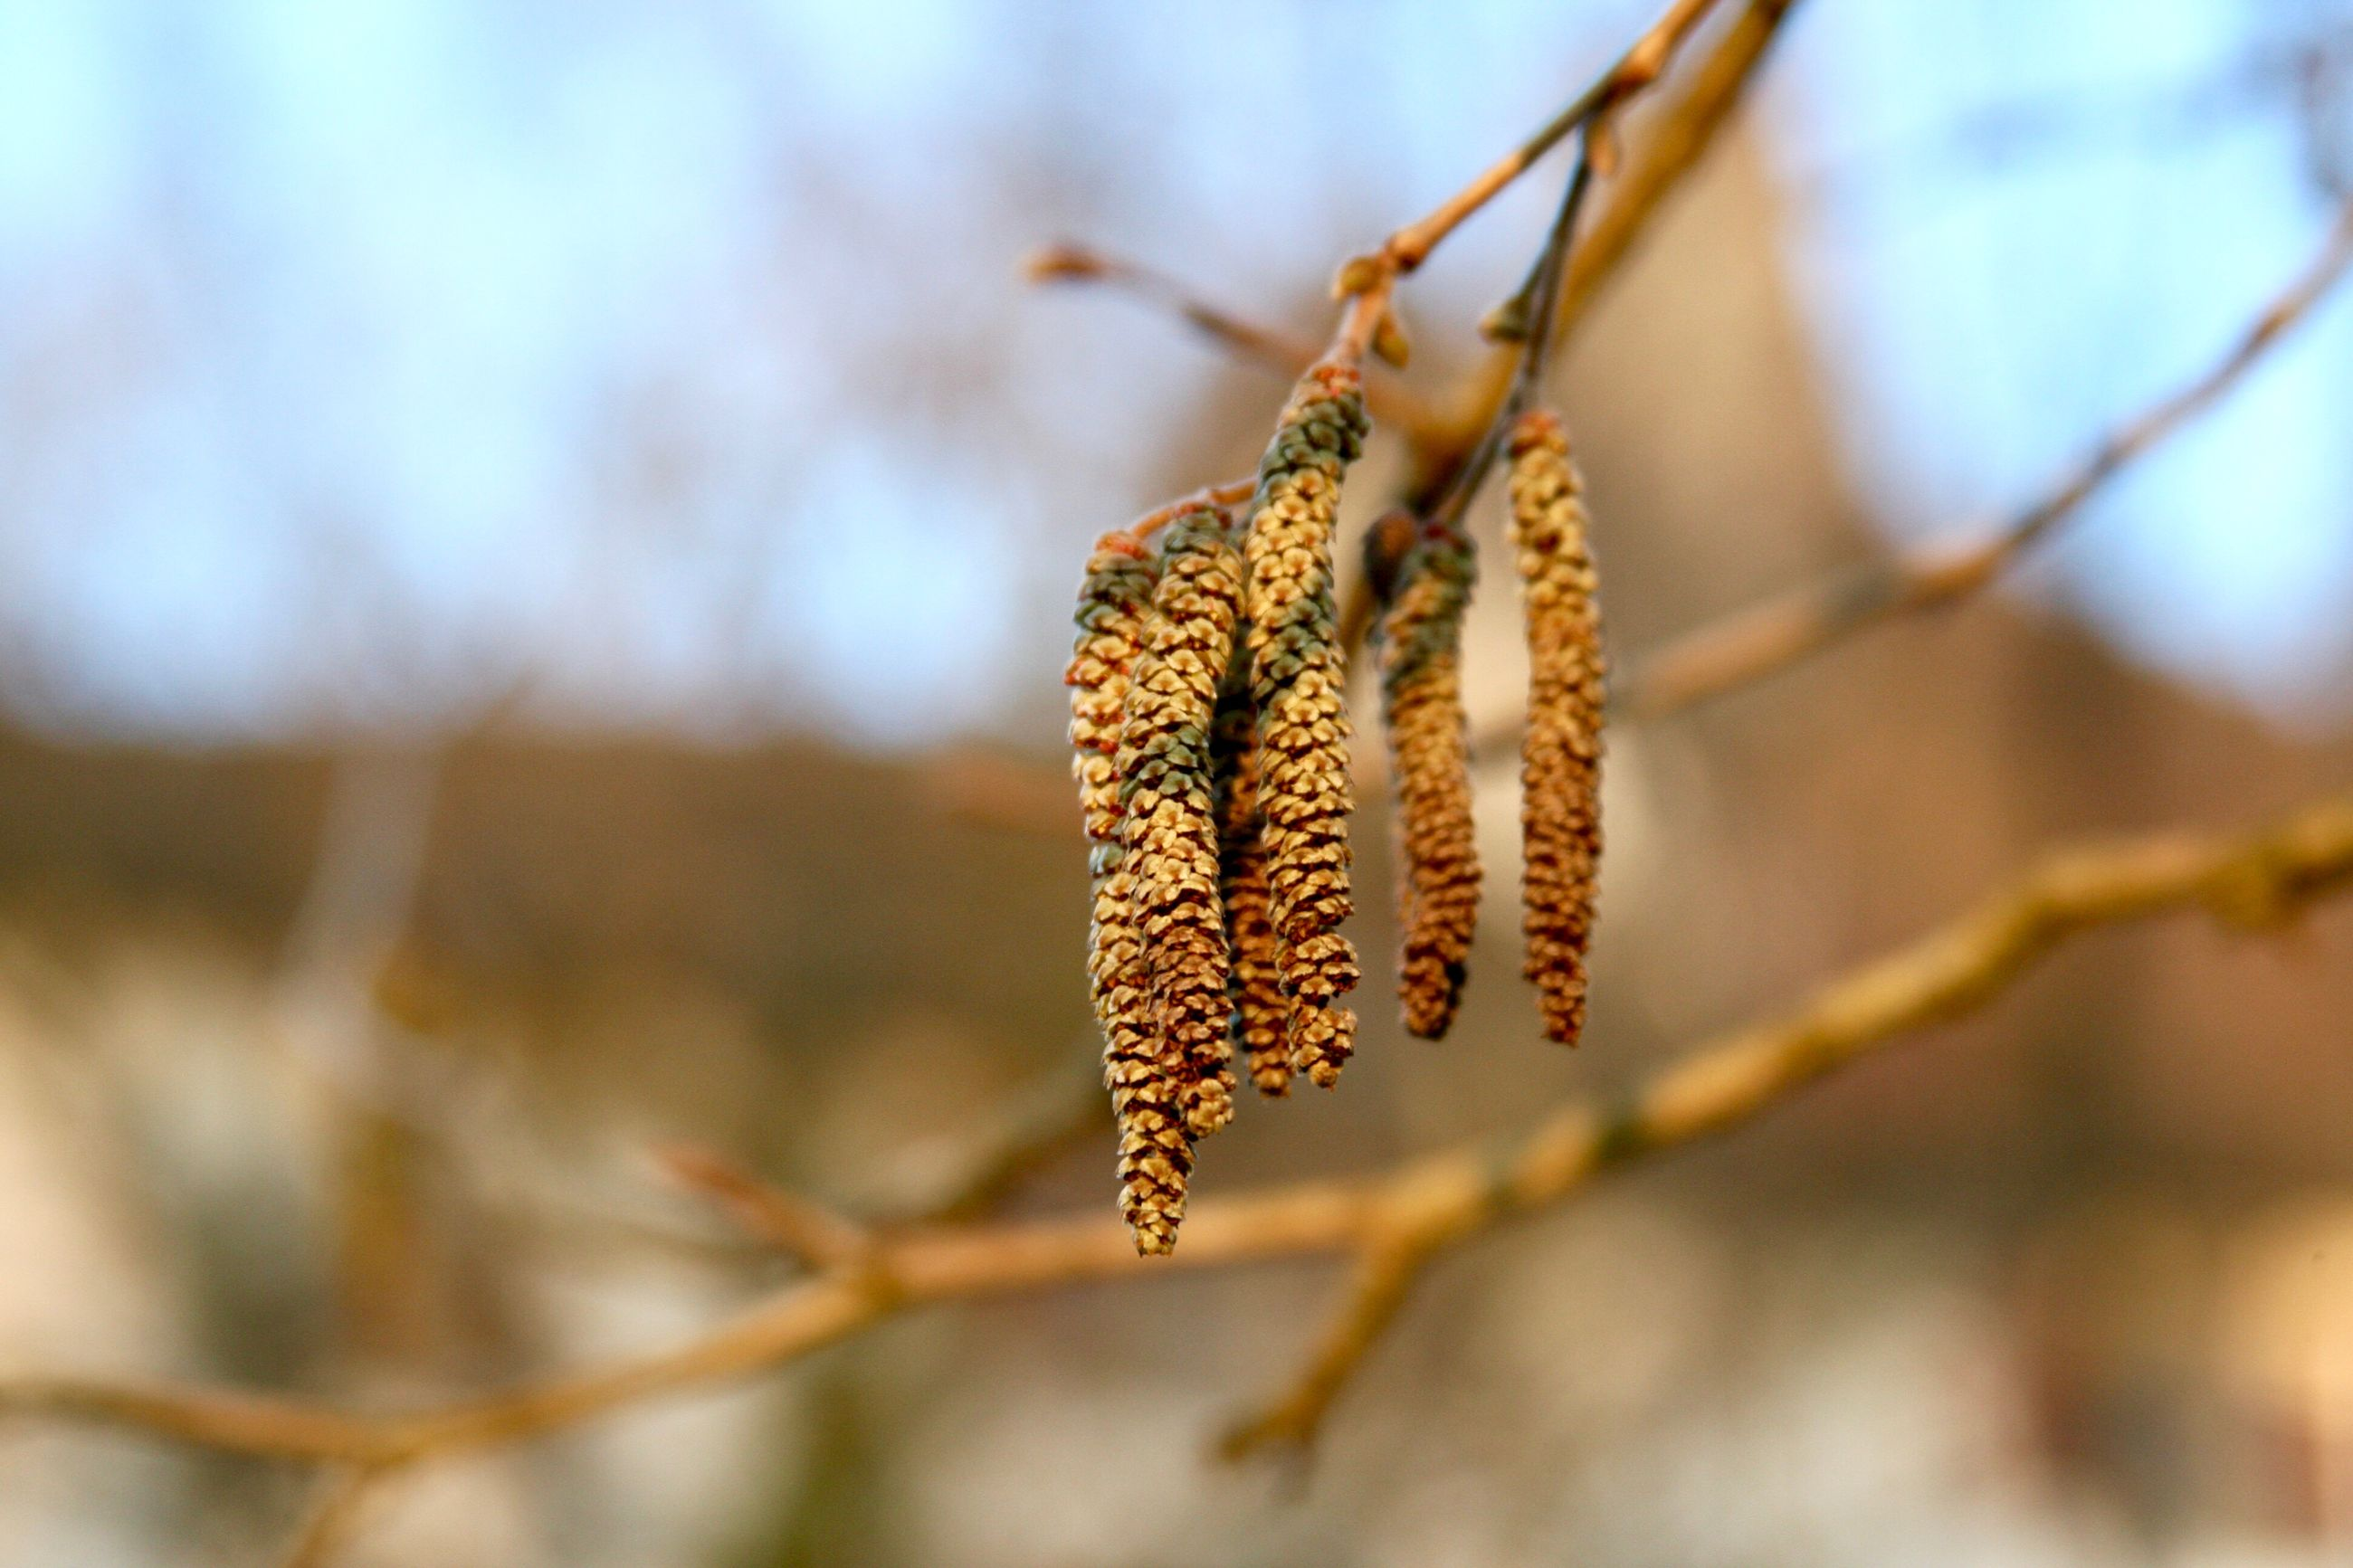 focus on foreground, catkin, nature, day, no people, close-up, outdoors, beauty in nature